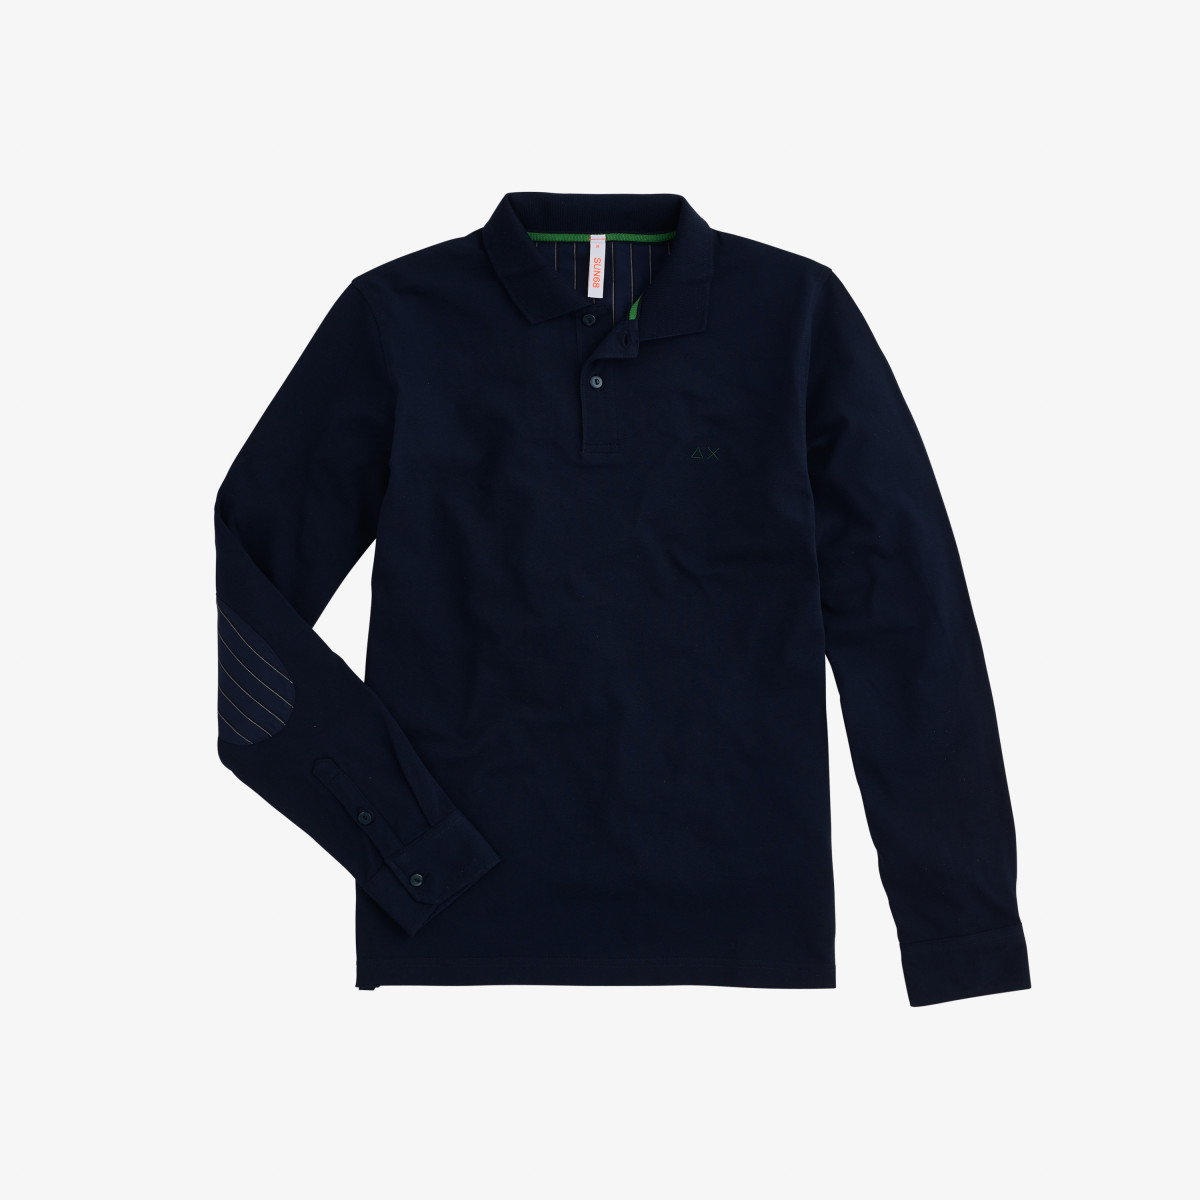 POLO EL. ELBOW SHIRT FABRIC L/S NAVY BLUE